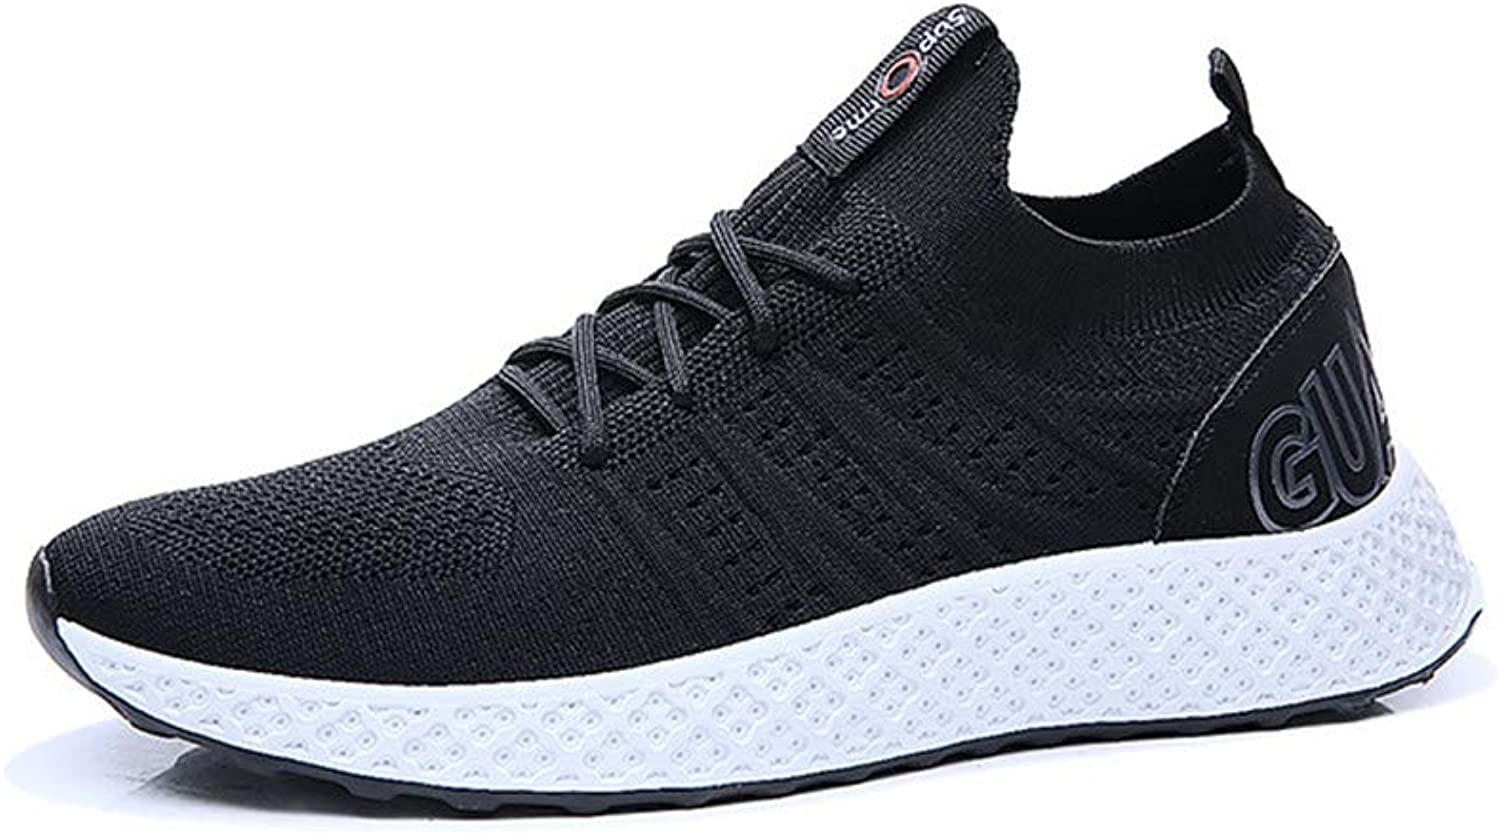 Men's Sports shoes Running Sneakers Trainers Fitness Athletic Walking Gym